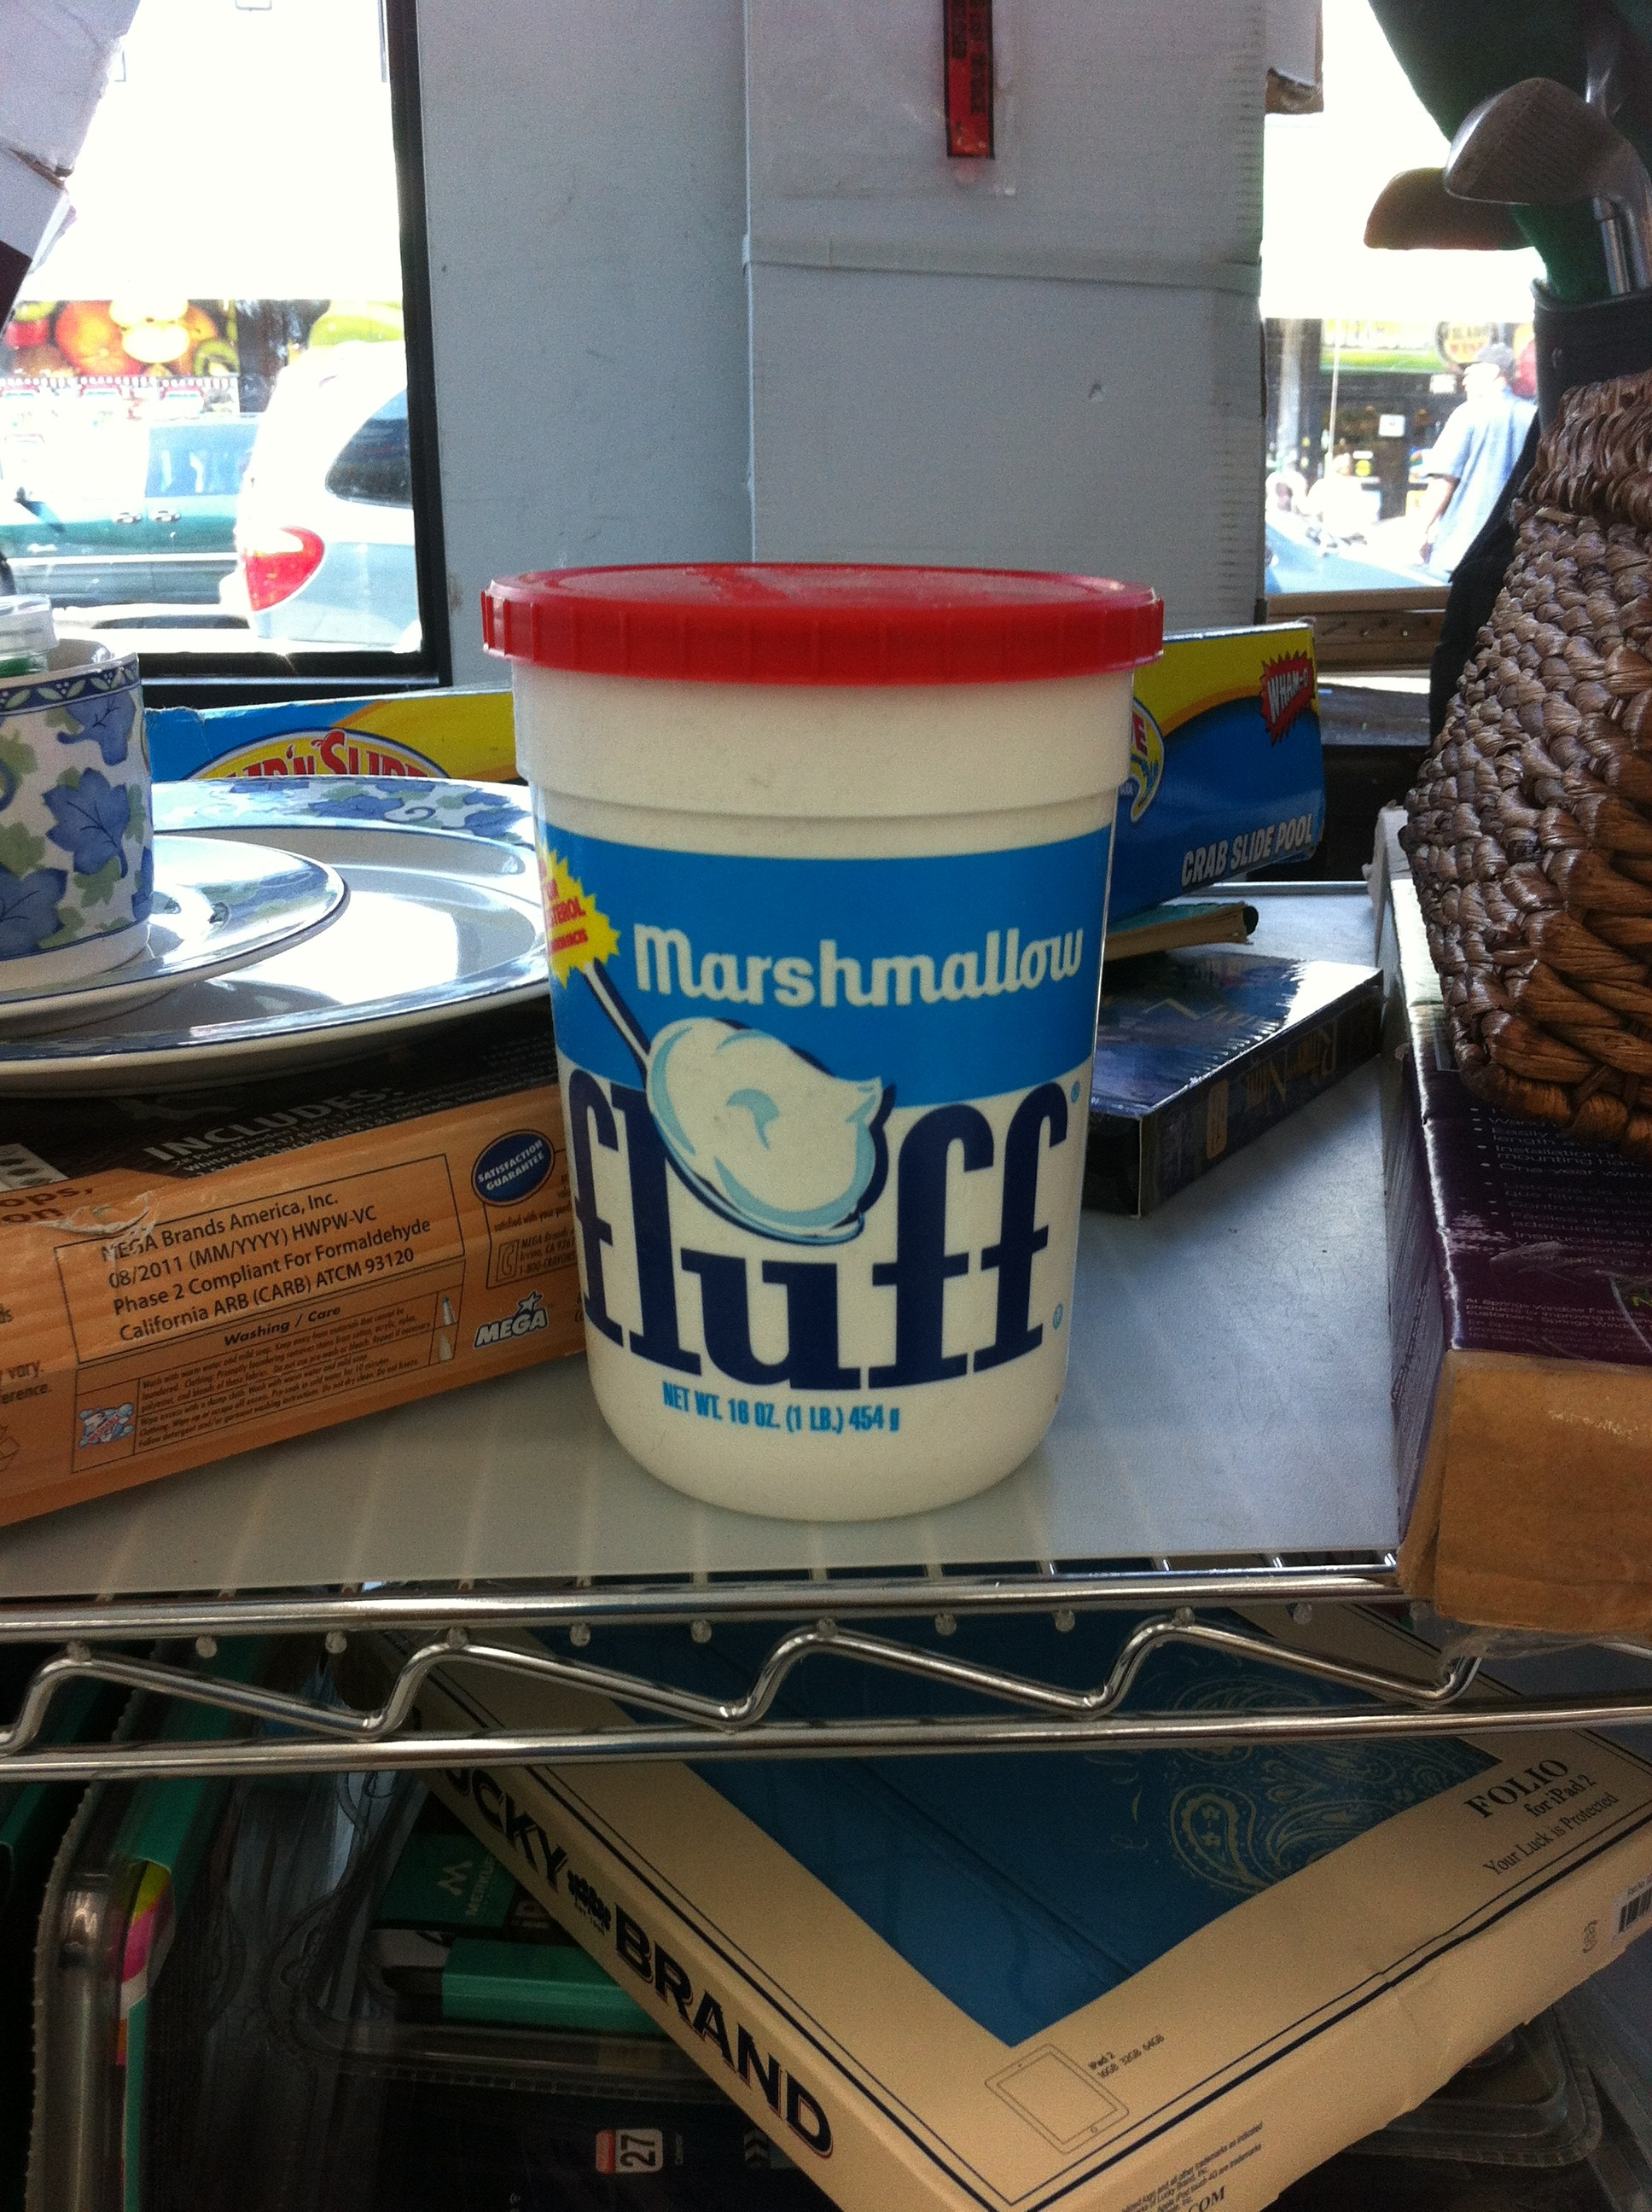 A pic of a tub of Marshmellow Fluff in the thrift store